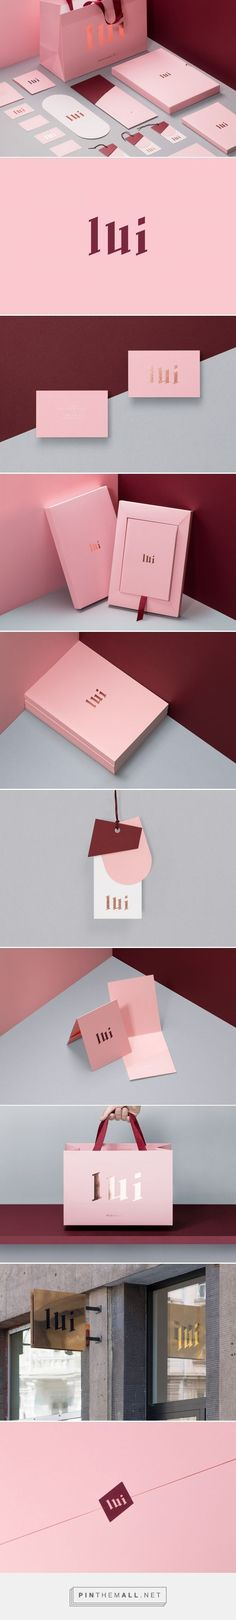 Lui Store Fashion Boutique Branding by Gustaw Dmoswski | Fivestar Branding Agency – Design and Branding Agency & Curated Inspiration Gallery